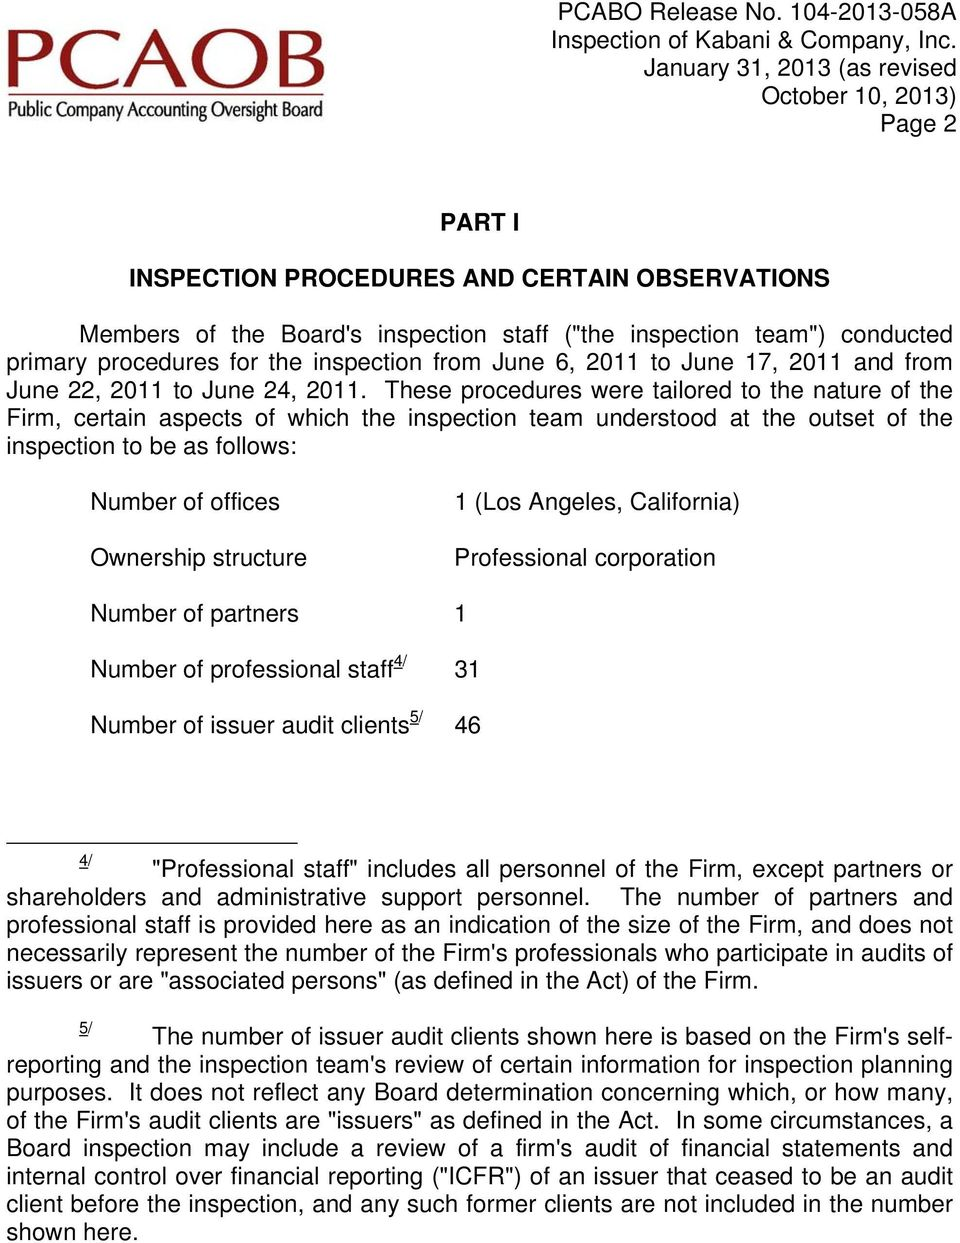 procedures for the inspection from June 6, 2011 to June 17, 2011 and from June 22, 2011 to June 24, 2011.